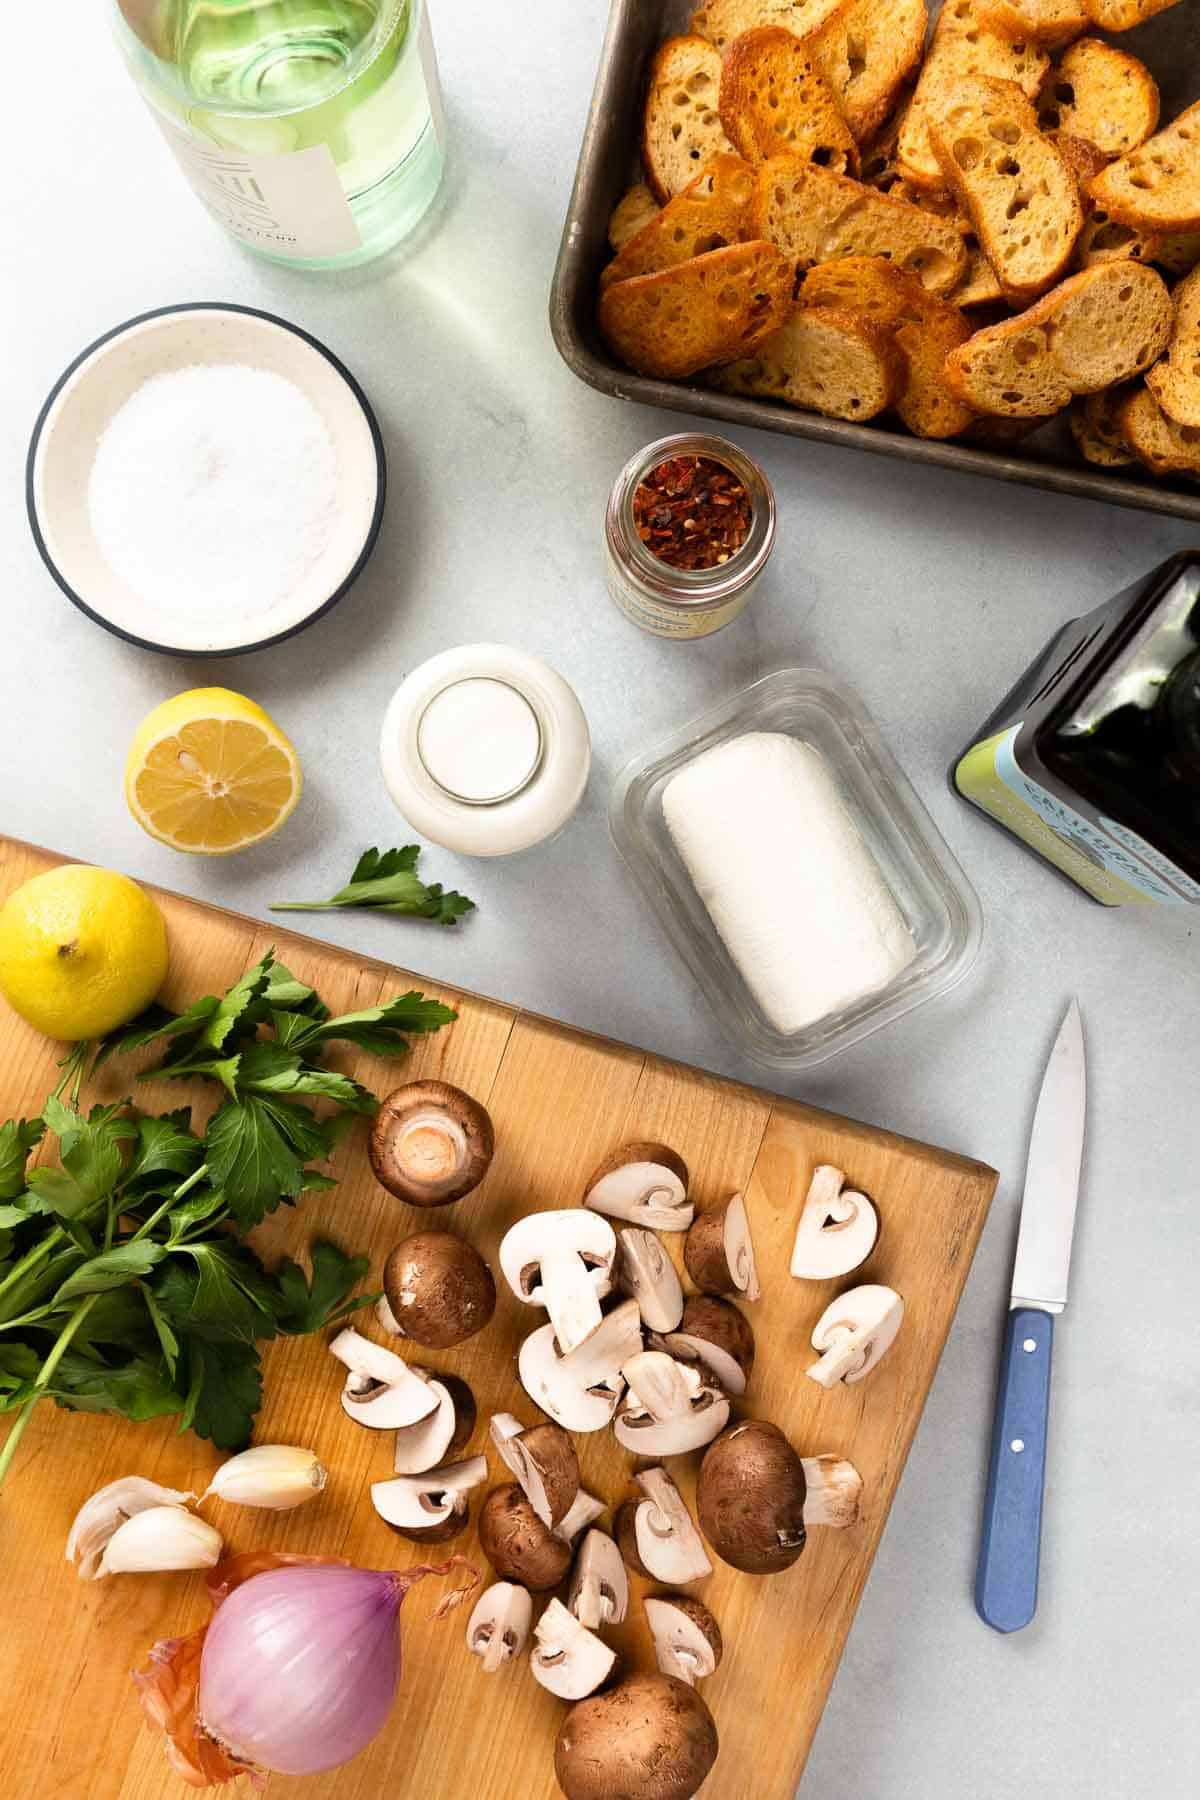 Chopping mushrooms and herbs on a large cutting board with crostini, goat cheese, salt, and lemon on the side